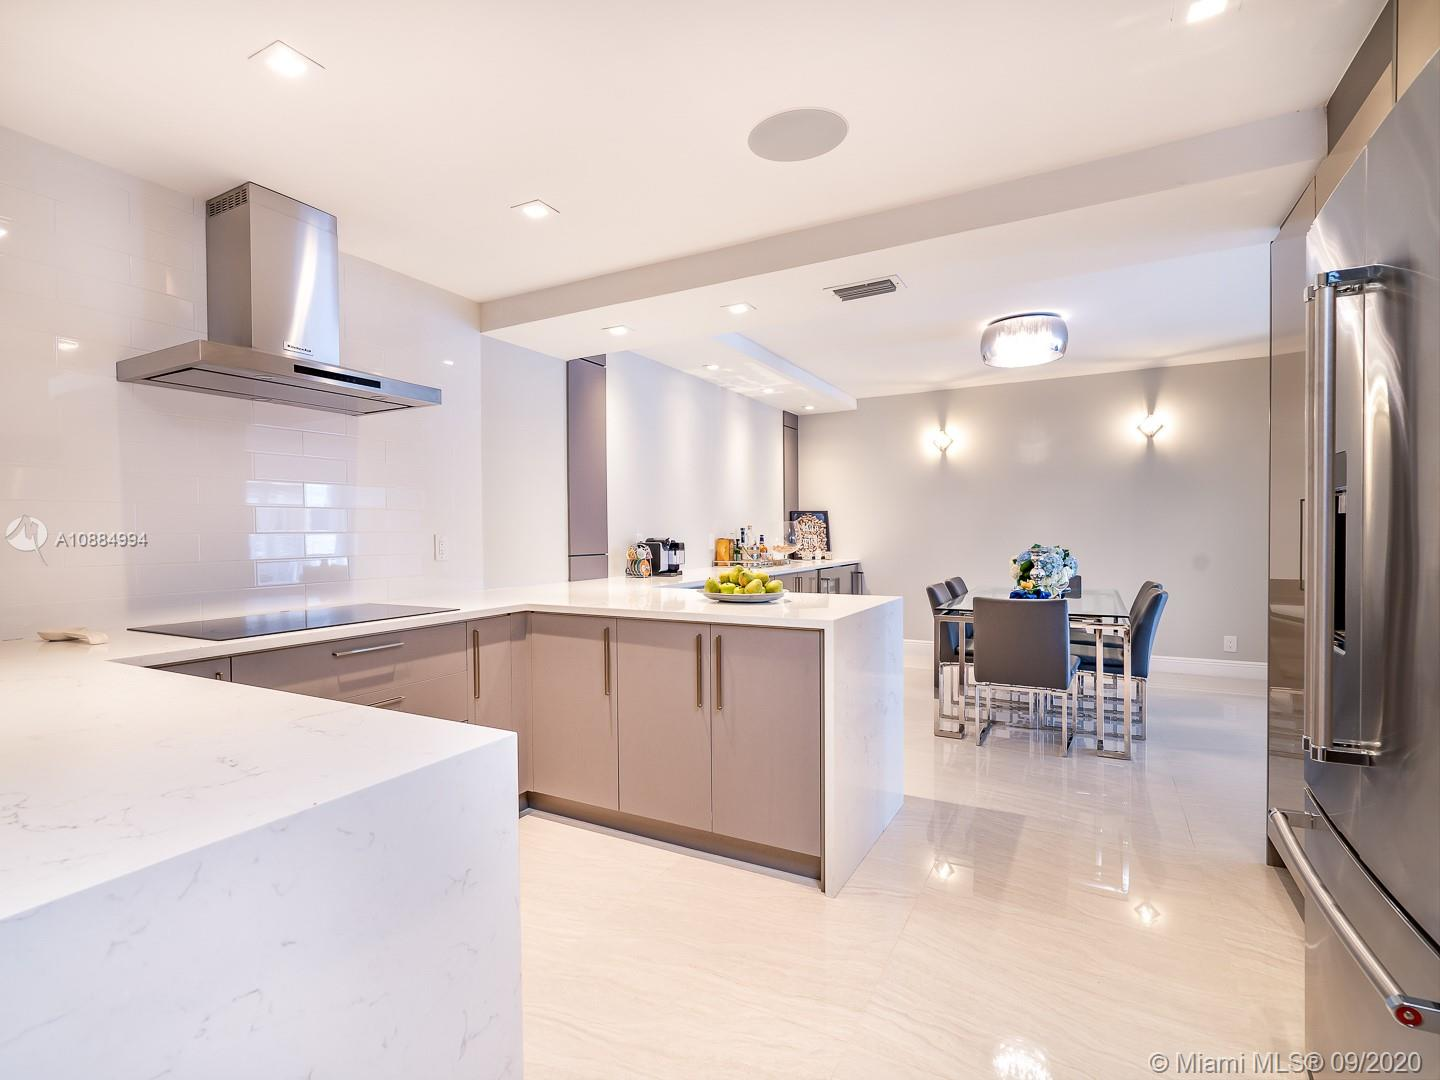 TOTALLY REMODELED APARTMENT WITH 3 BEDROOMS, 3.5 BATHROOMS. CUSTOM MADE KITCHEN, WITH A SEPARATE DINNING AREA, HUGE LIVING AREA FACING THE BALCONY WITH BAY AND PARTIAL OCEAN VIEWS. PORCELAIN TITLE THROUGHOUT THE APARTMENT.